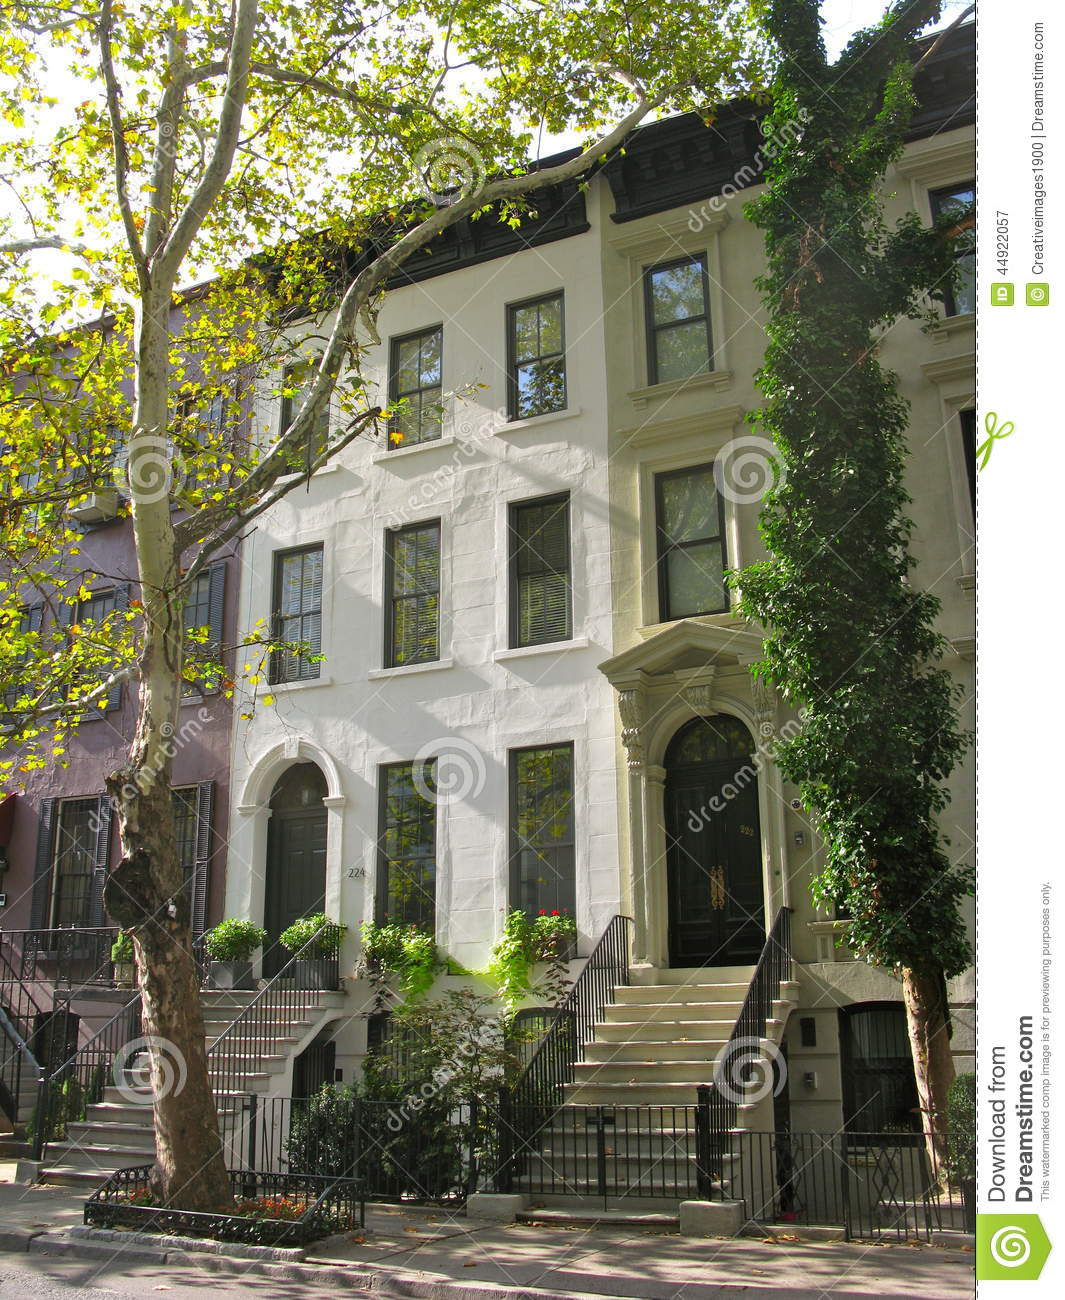 Rent Apartments In Nyc: Three Elegant New York City Townhouses Stock Image